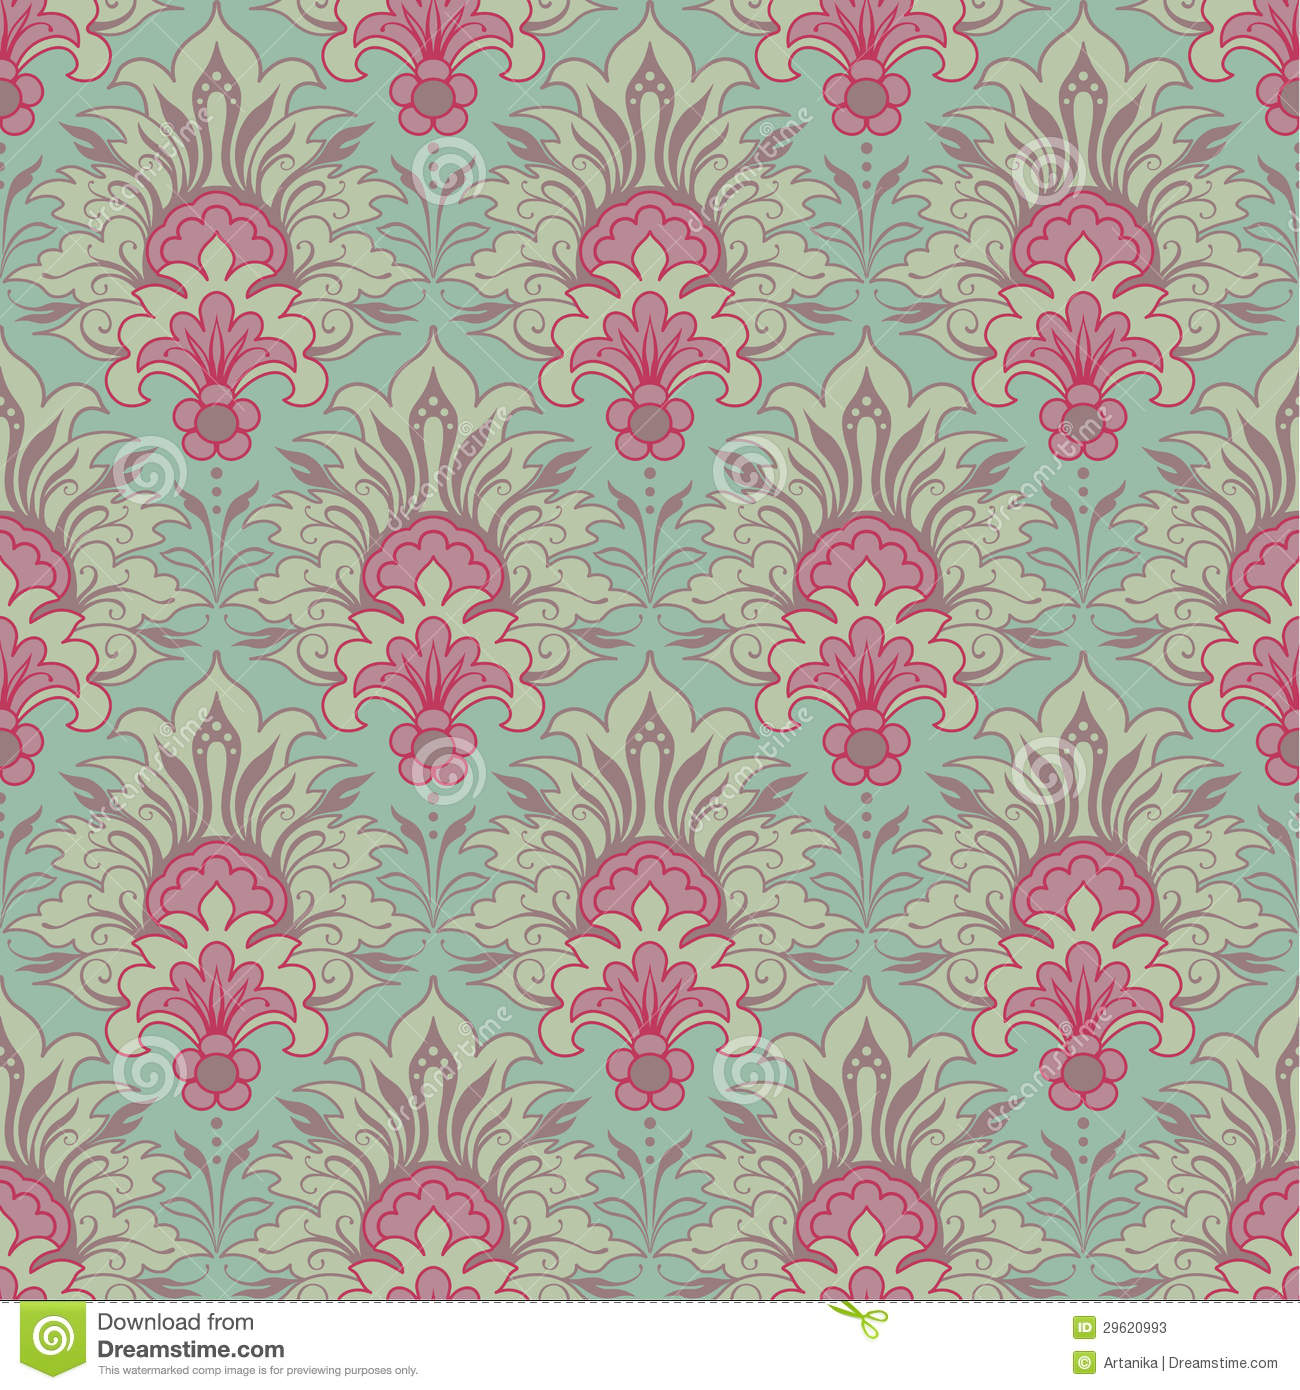 victorian wallpaper seamless - photo #8